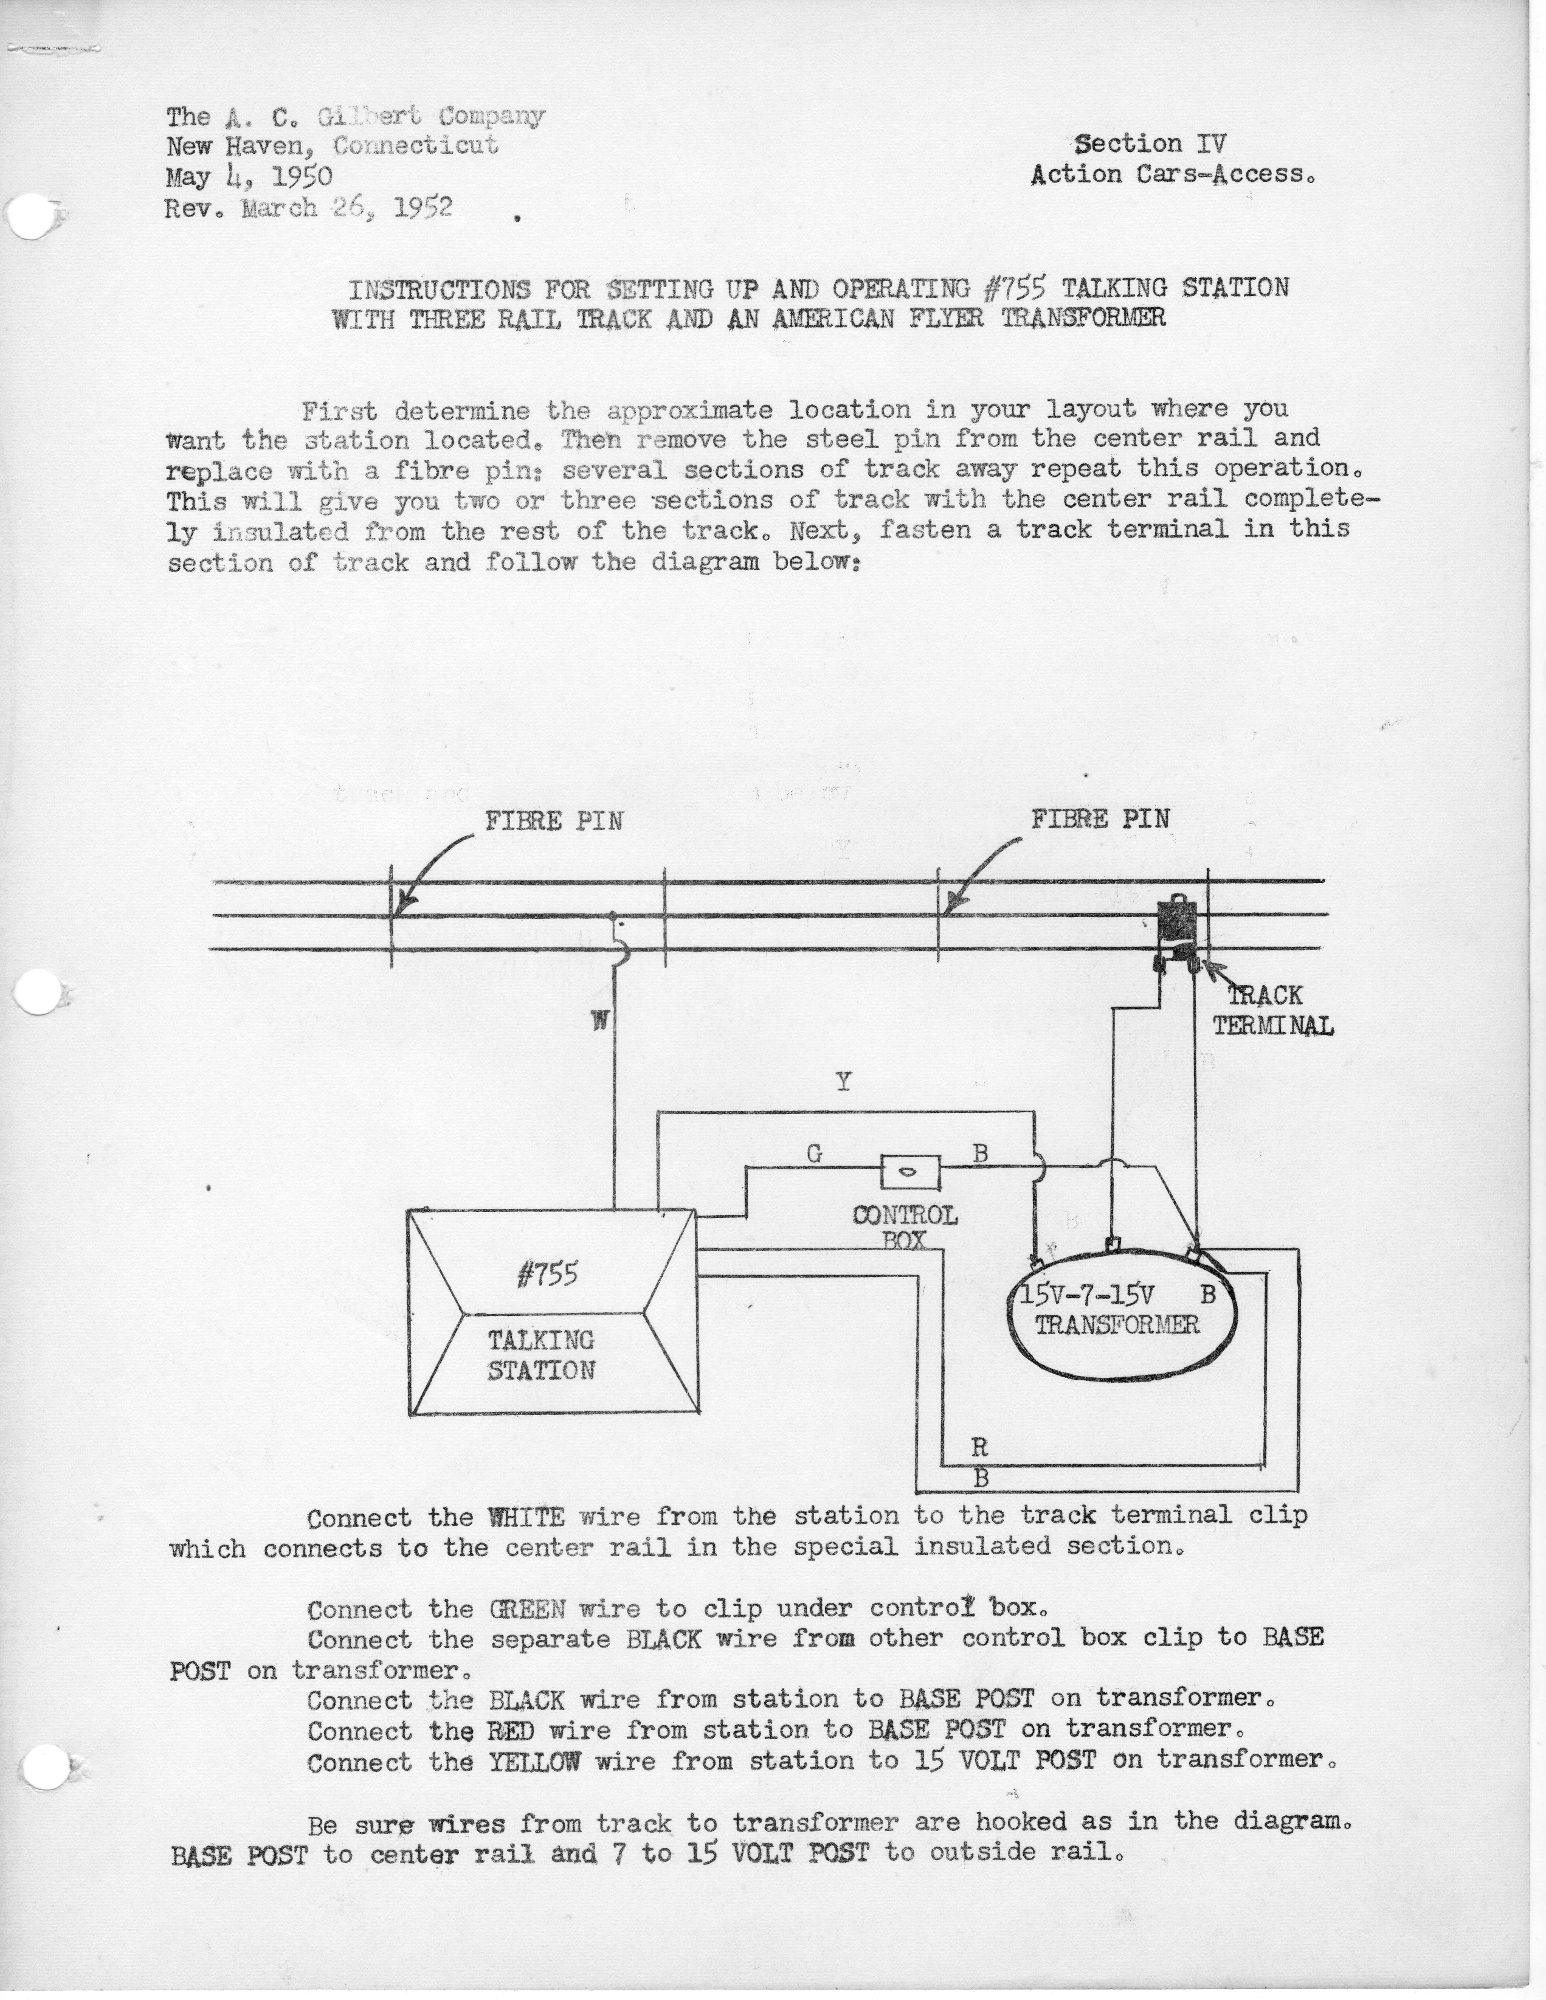 M2600 755 Talking Station 3 Rail Instructions Lo Resl 003 american flyer talking station 755 instructions traindr american flyer wiring diagrams at nearapp.co